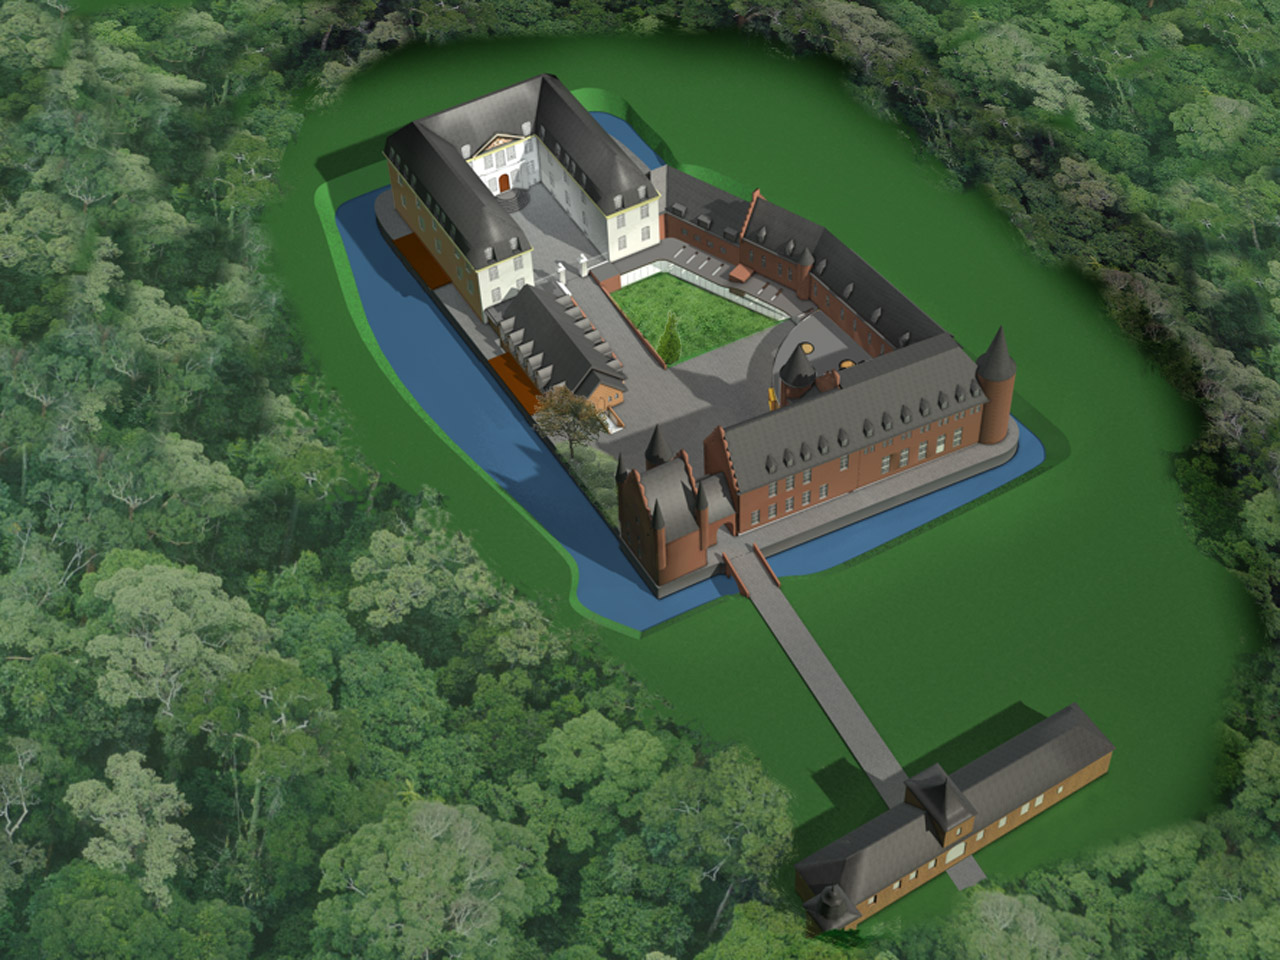 proposed design for reuse castle gemert